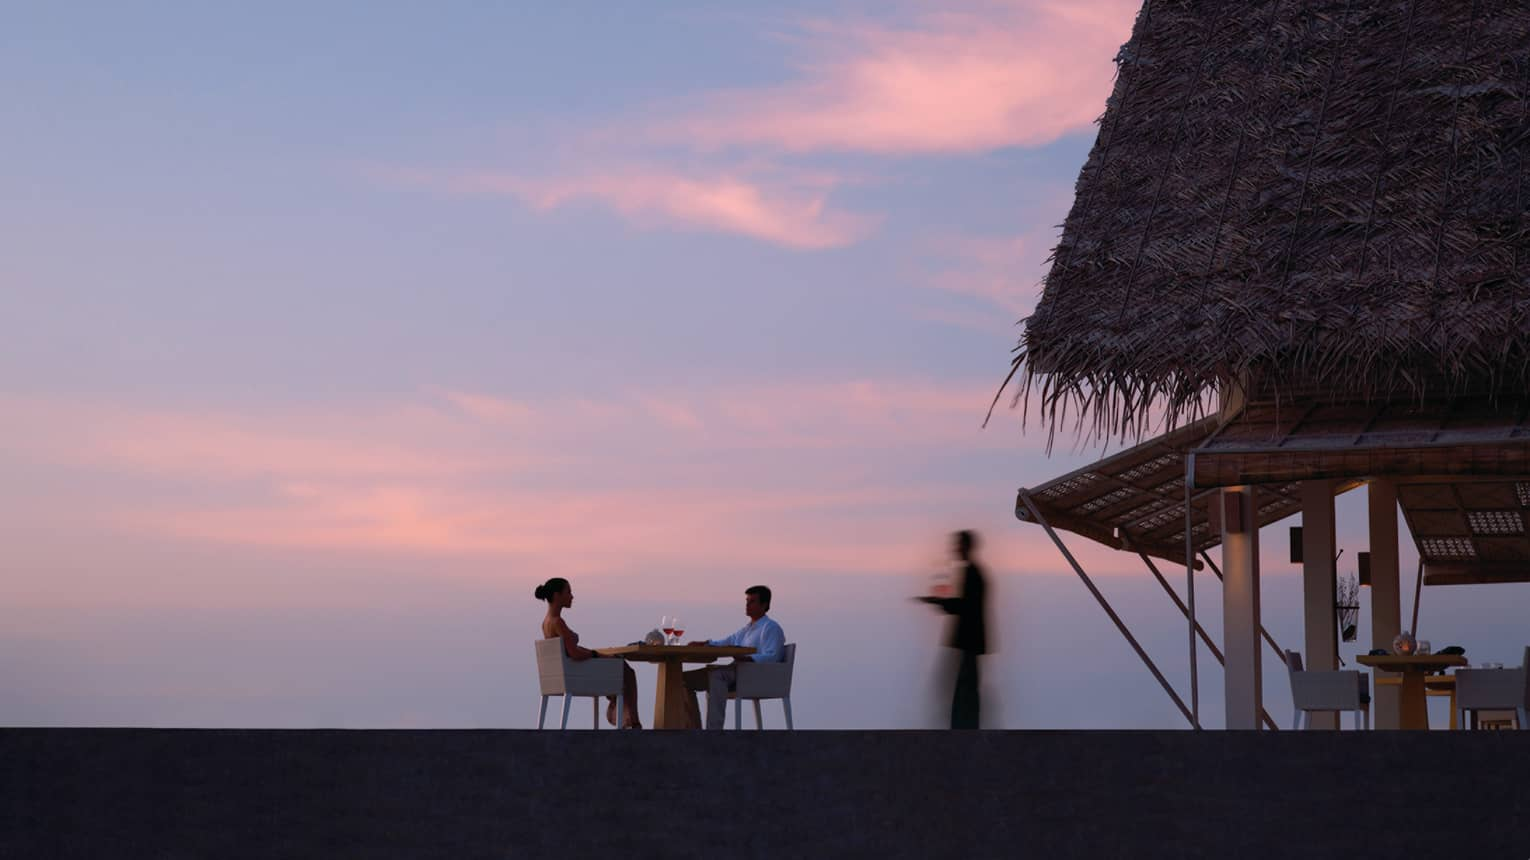 Silhouette of server walking towards couple dining at table near thatched-roof pavilion, pink sunset